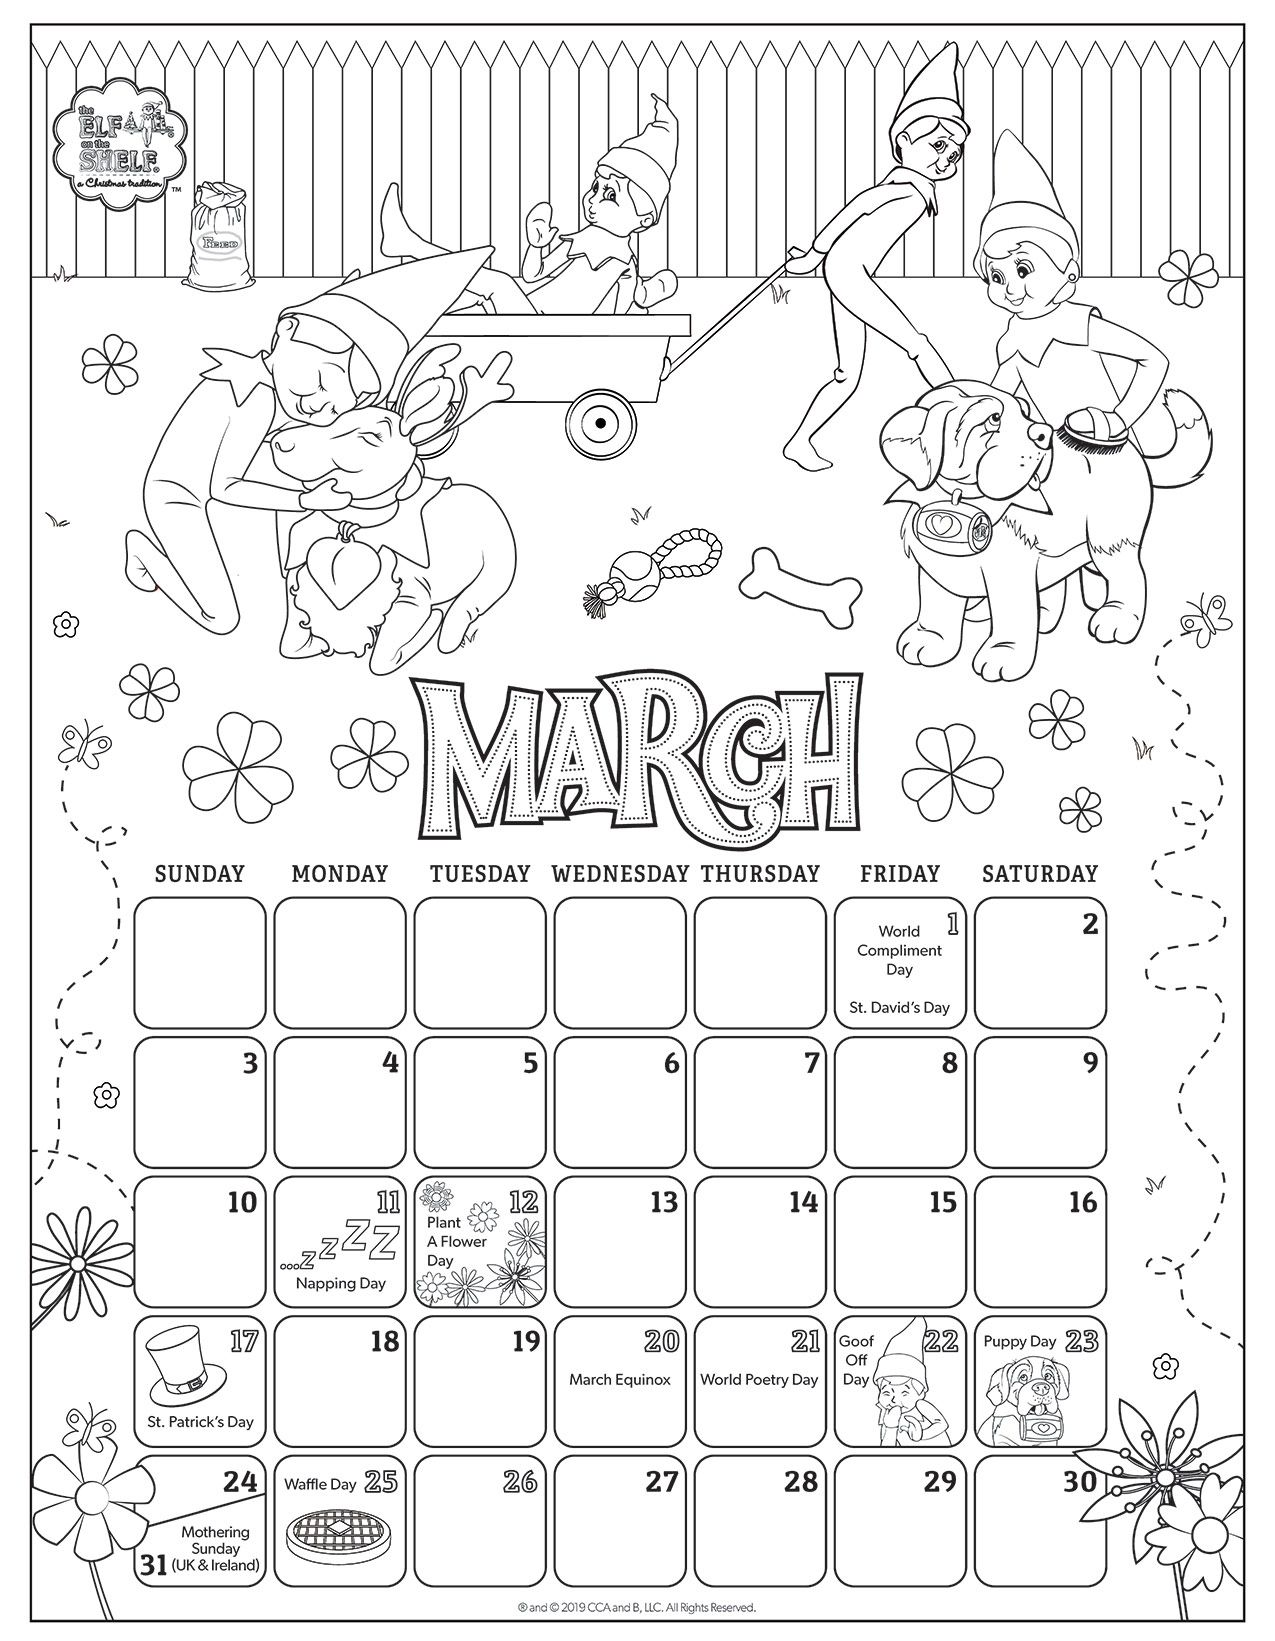 A Christmas Tradition Kids Calendar Christmas Elf Coloring Pages